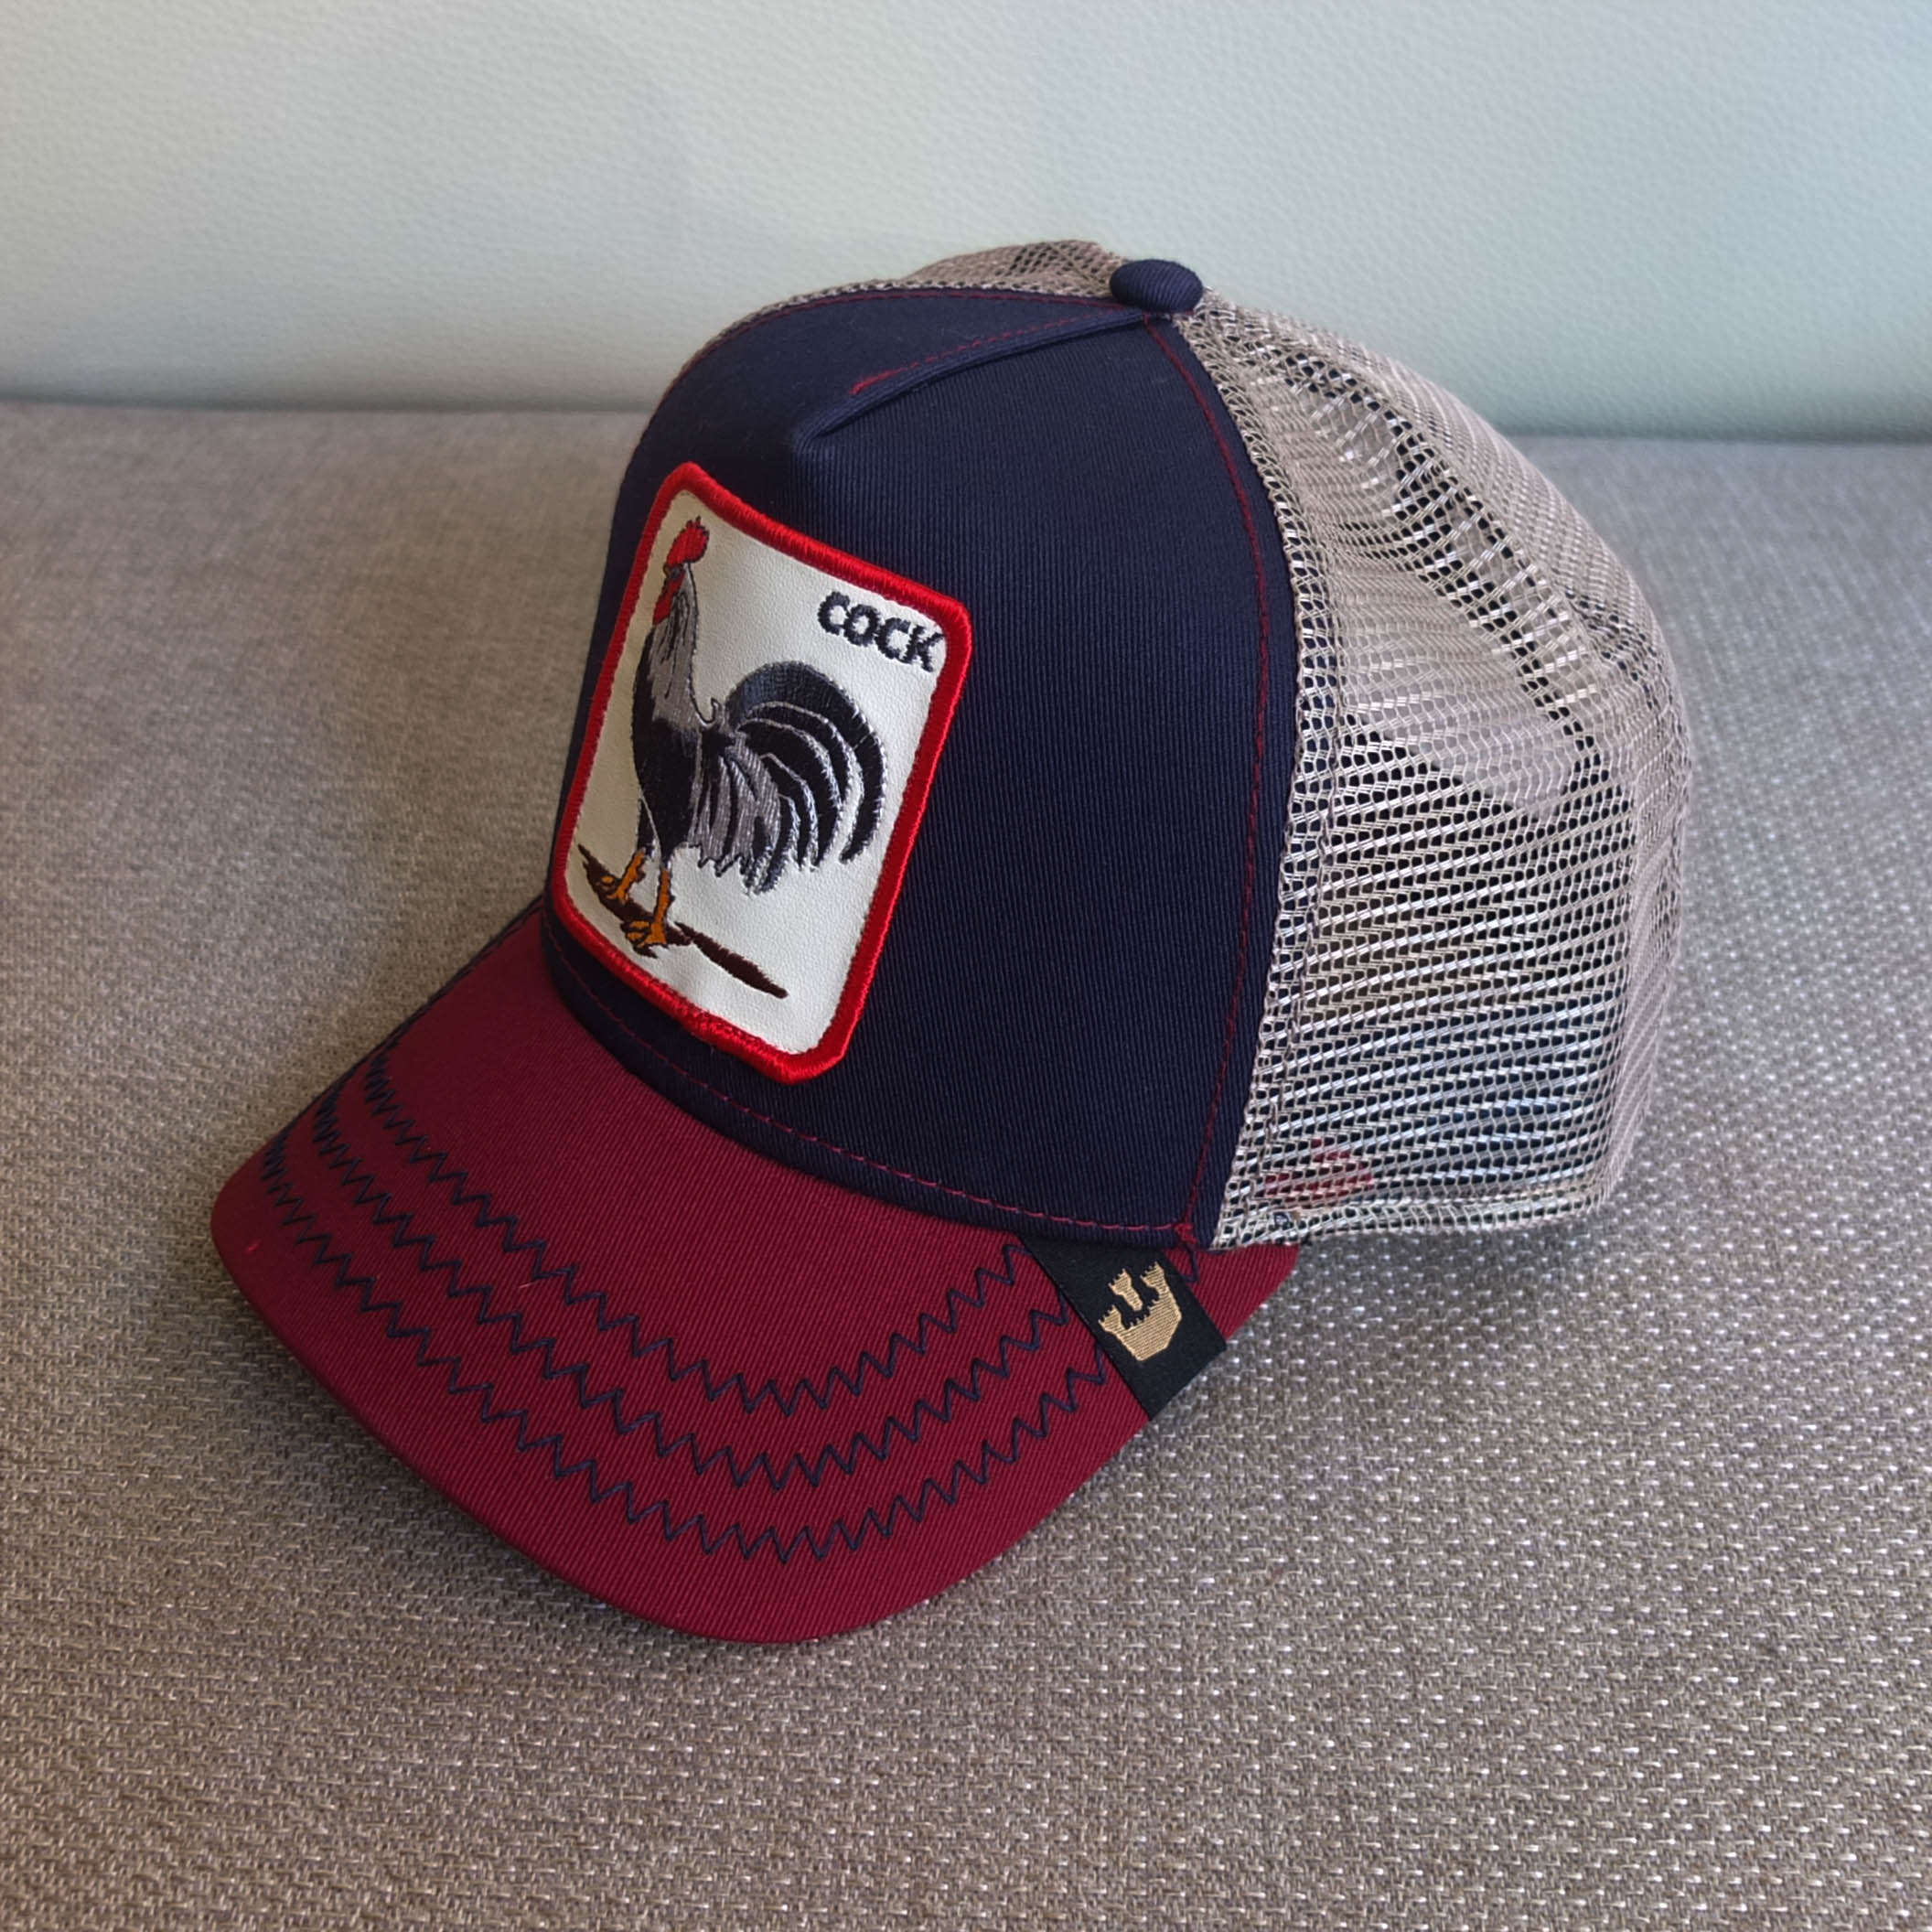 Home Ropa Gorras Gooring Bros Gorra Cock Red and Blue de Goorin Bros. 4723bf1f1e1